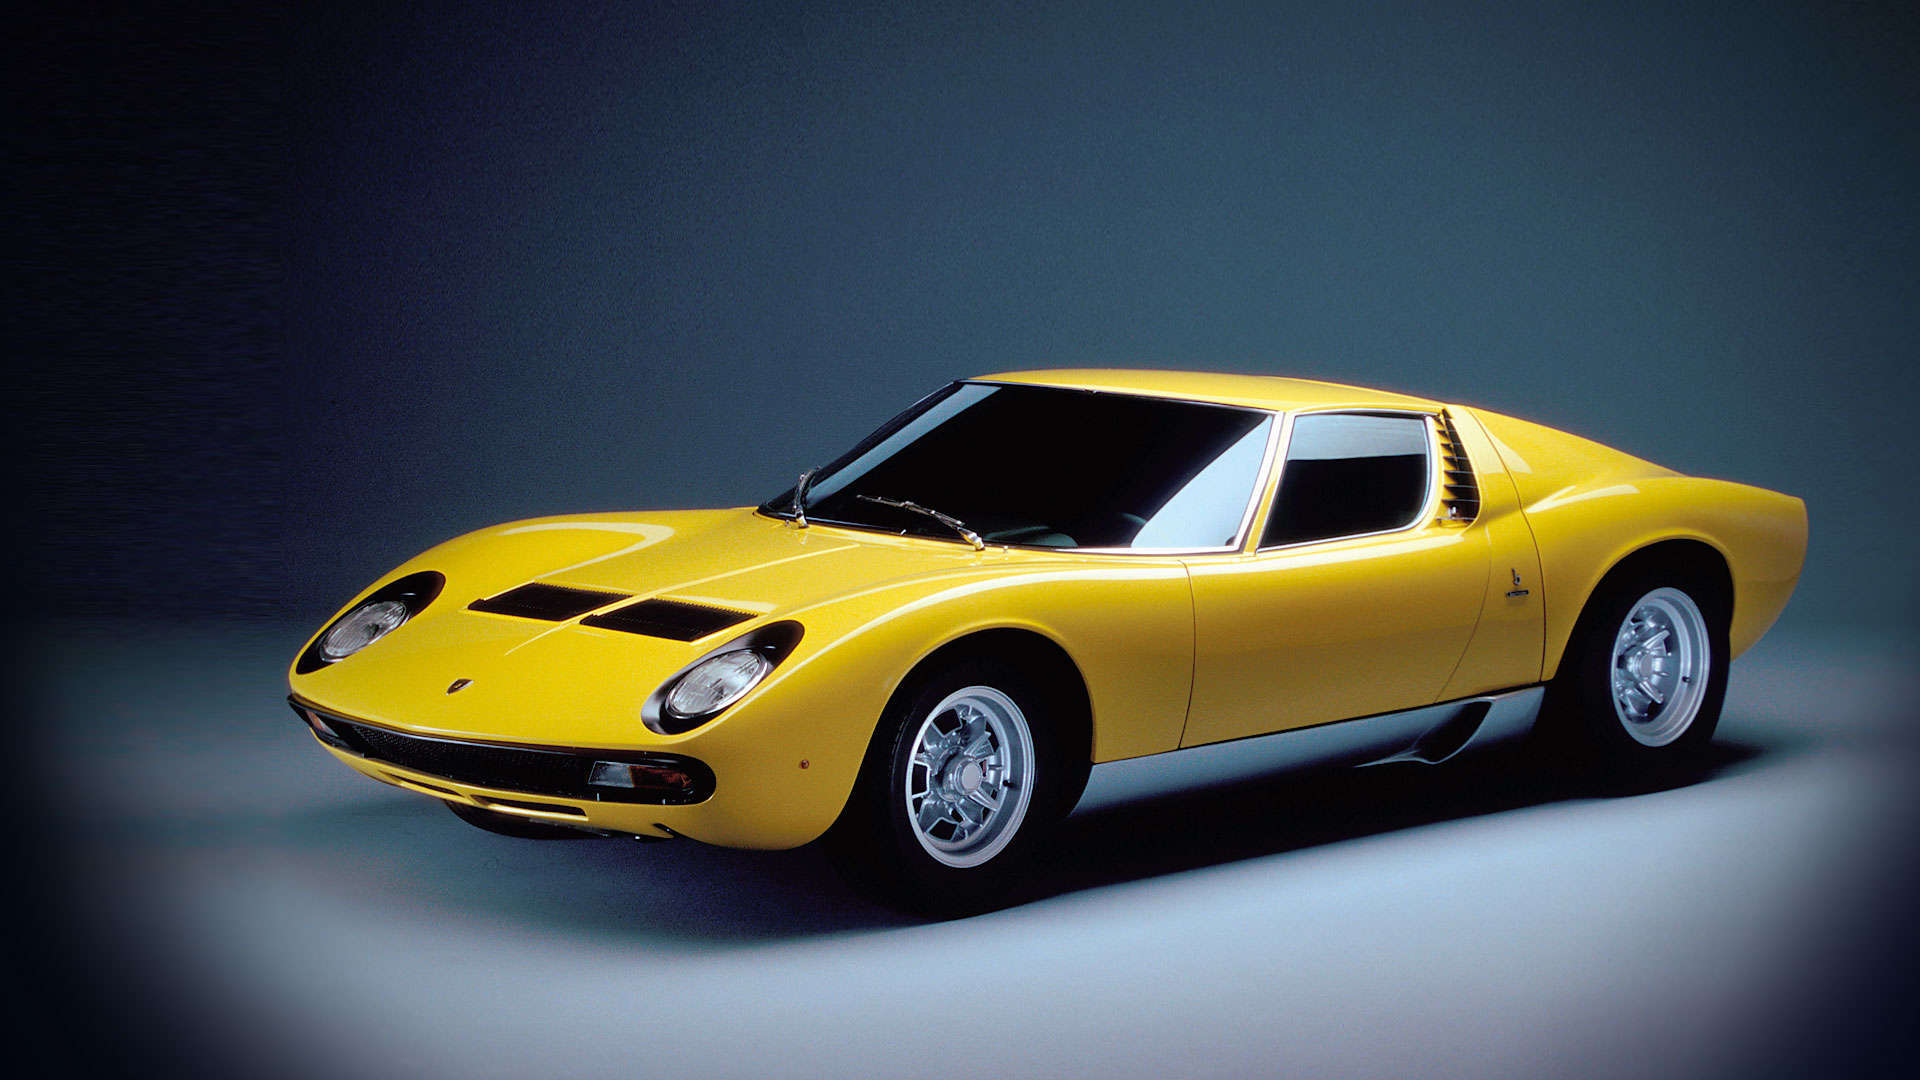 Wallpaper 1966 Lamborghini Miura HD Wallpaper 1080p Upload at March 1920x1080